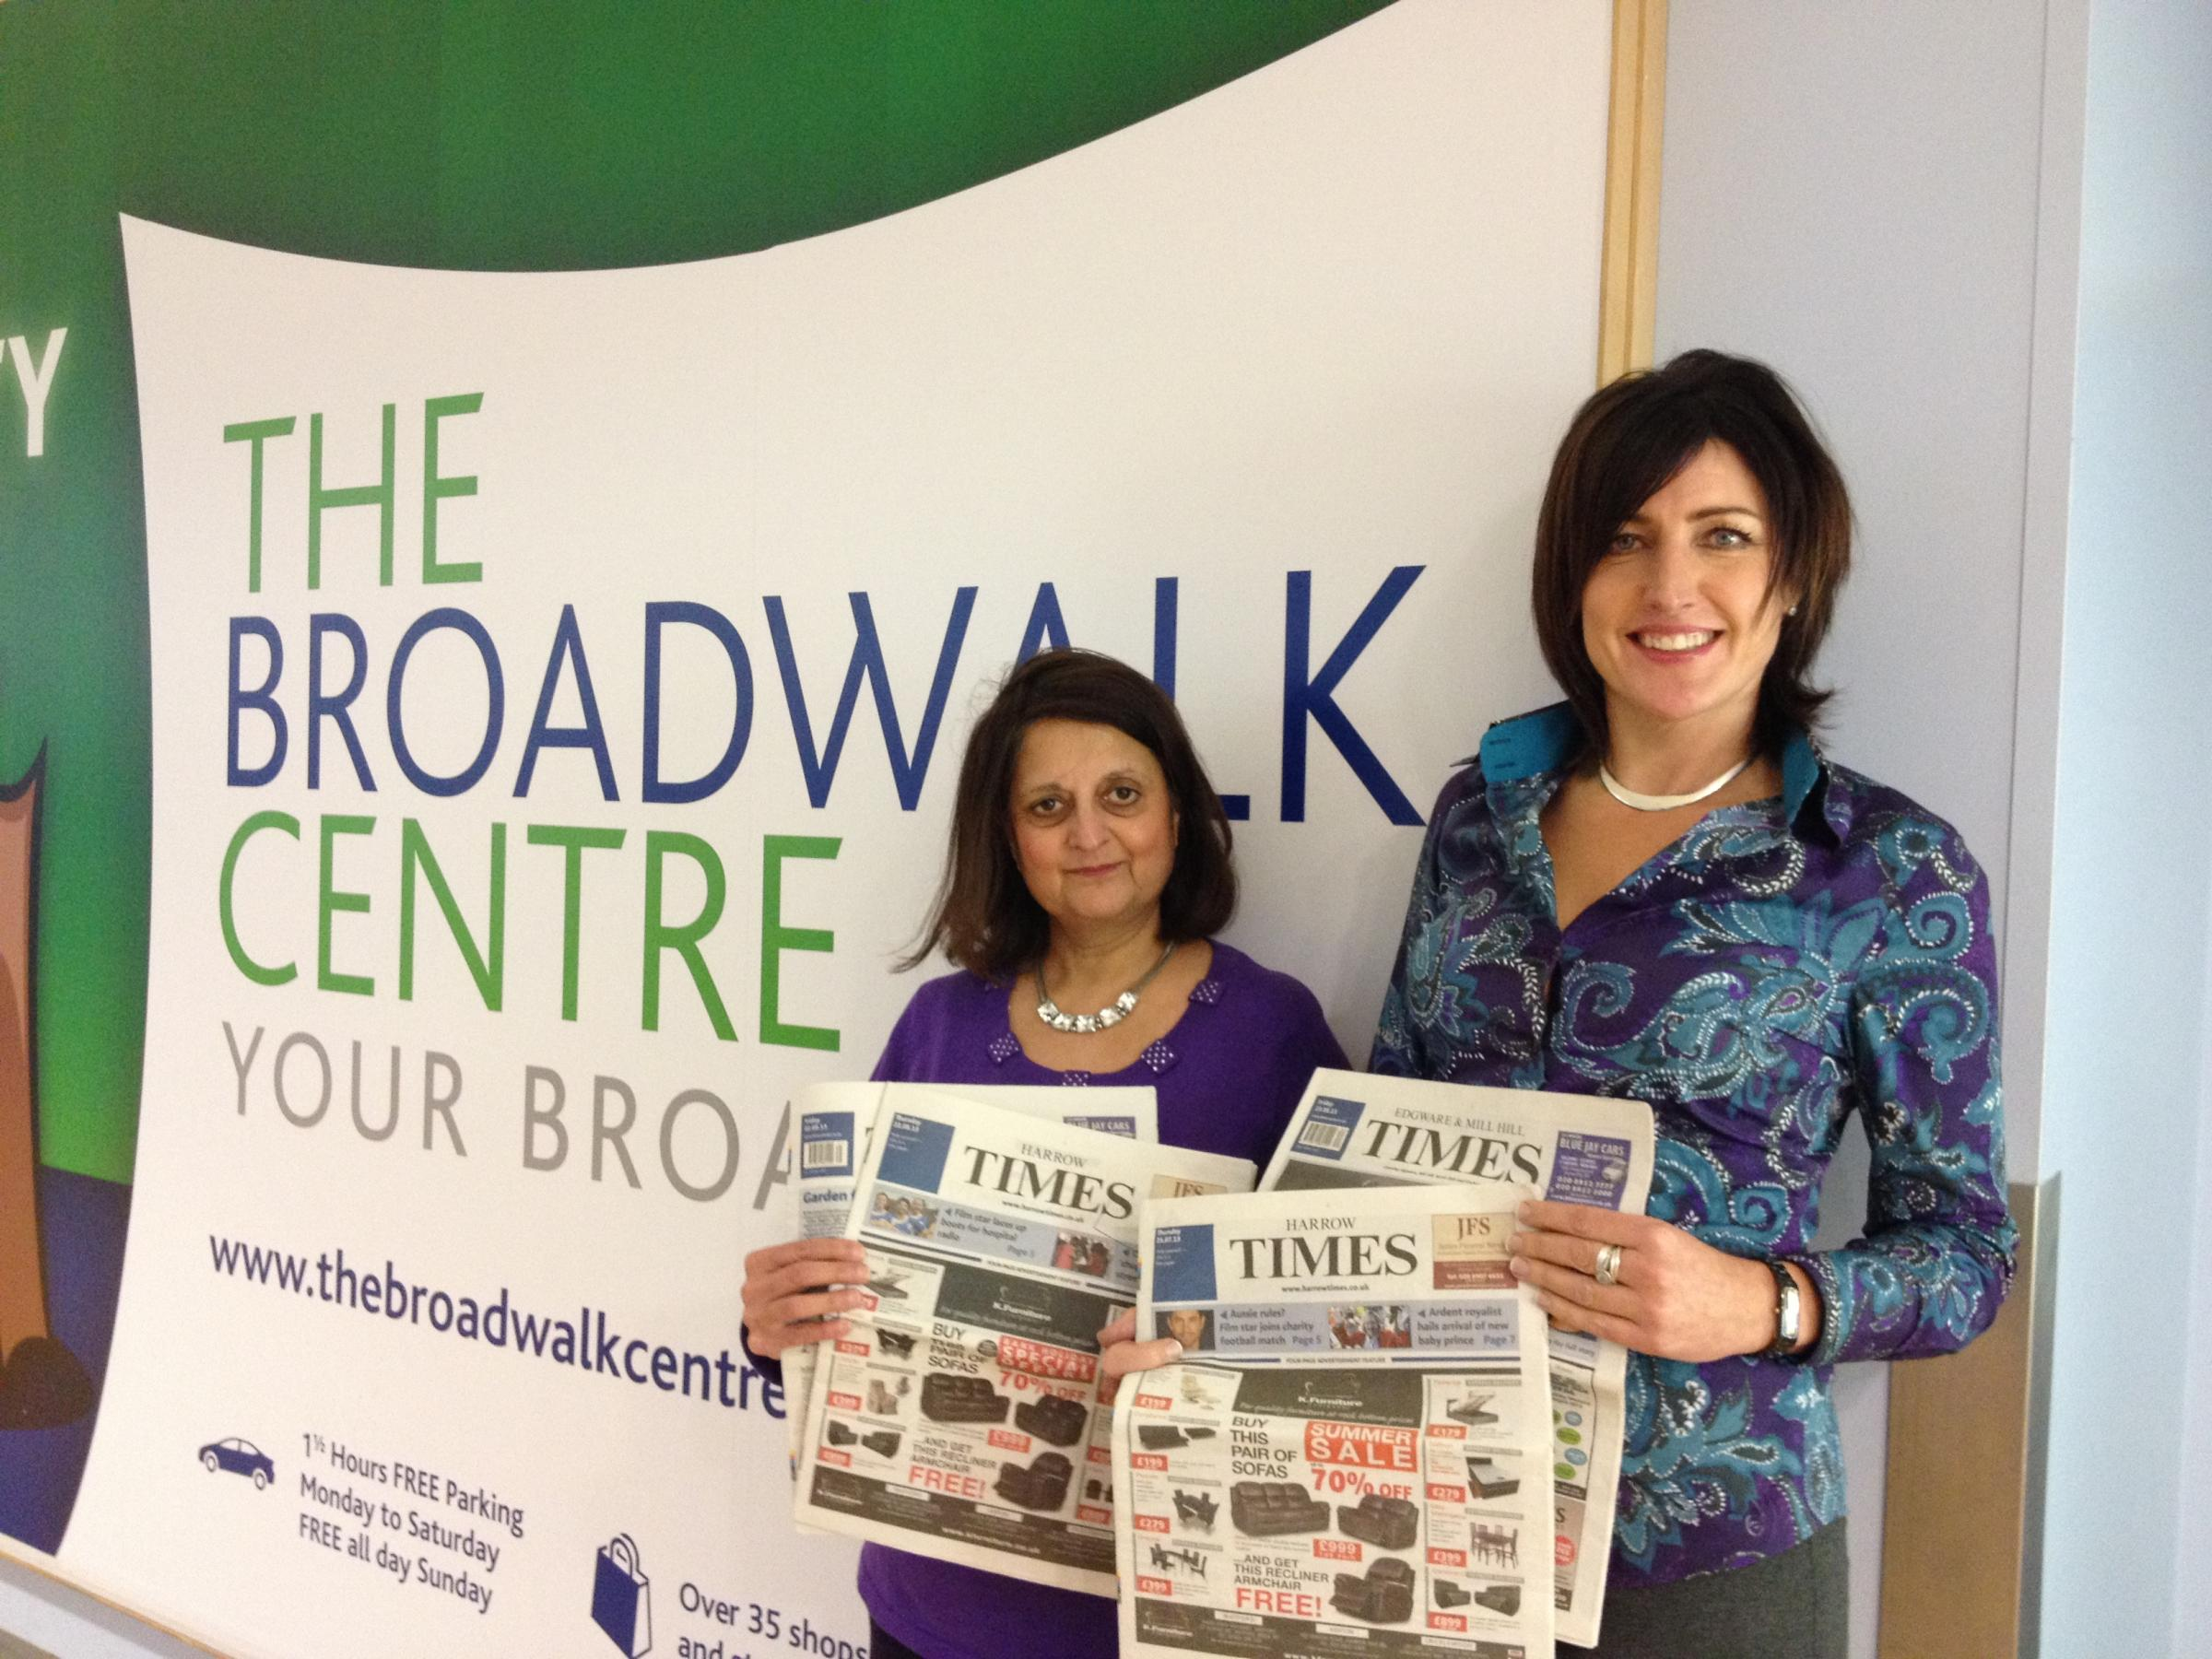 Ranu Mehta-Radia, Founder of Sai School of Harrow and Angela Brooks, Centre Manager of The Broadwalk Centre